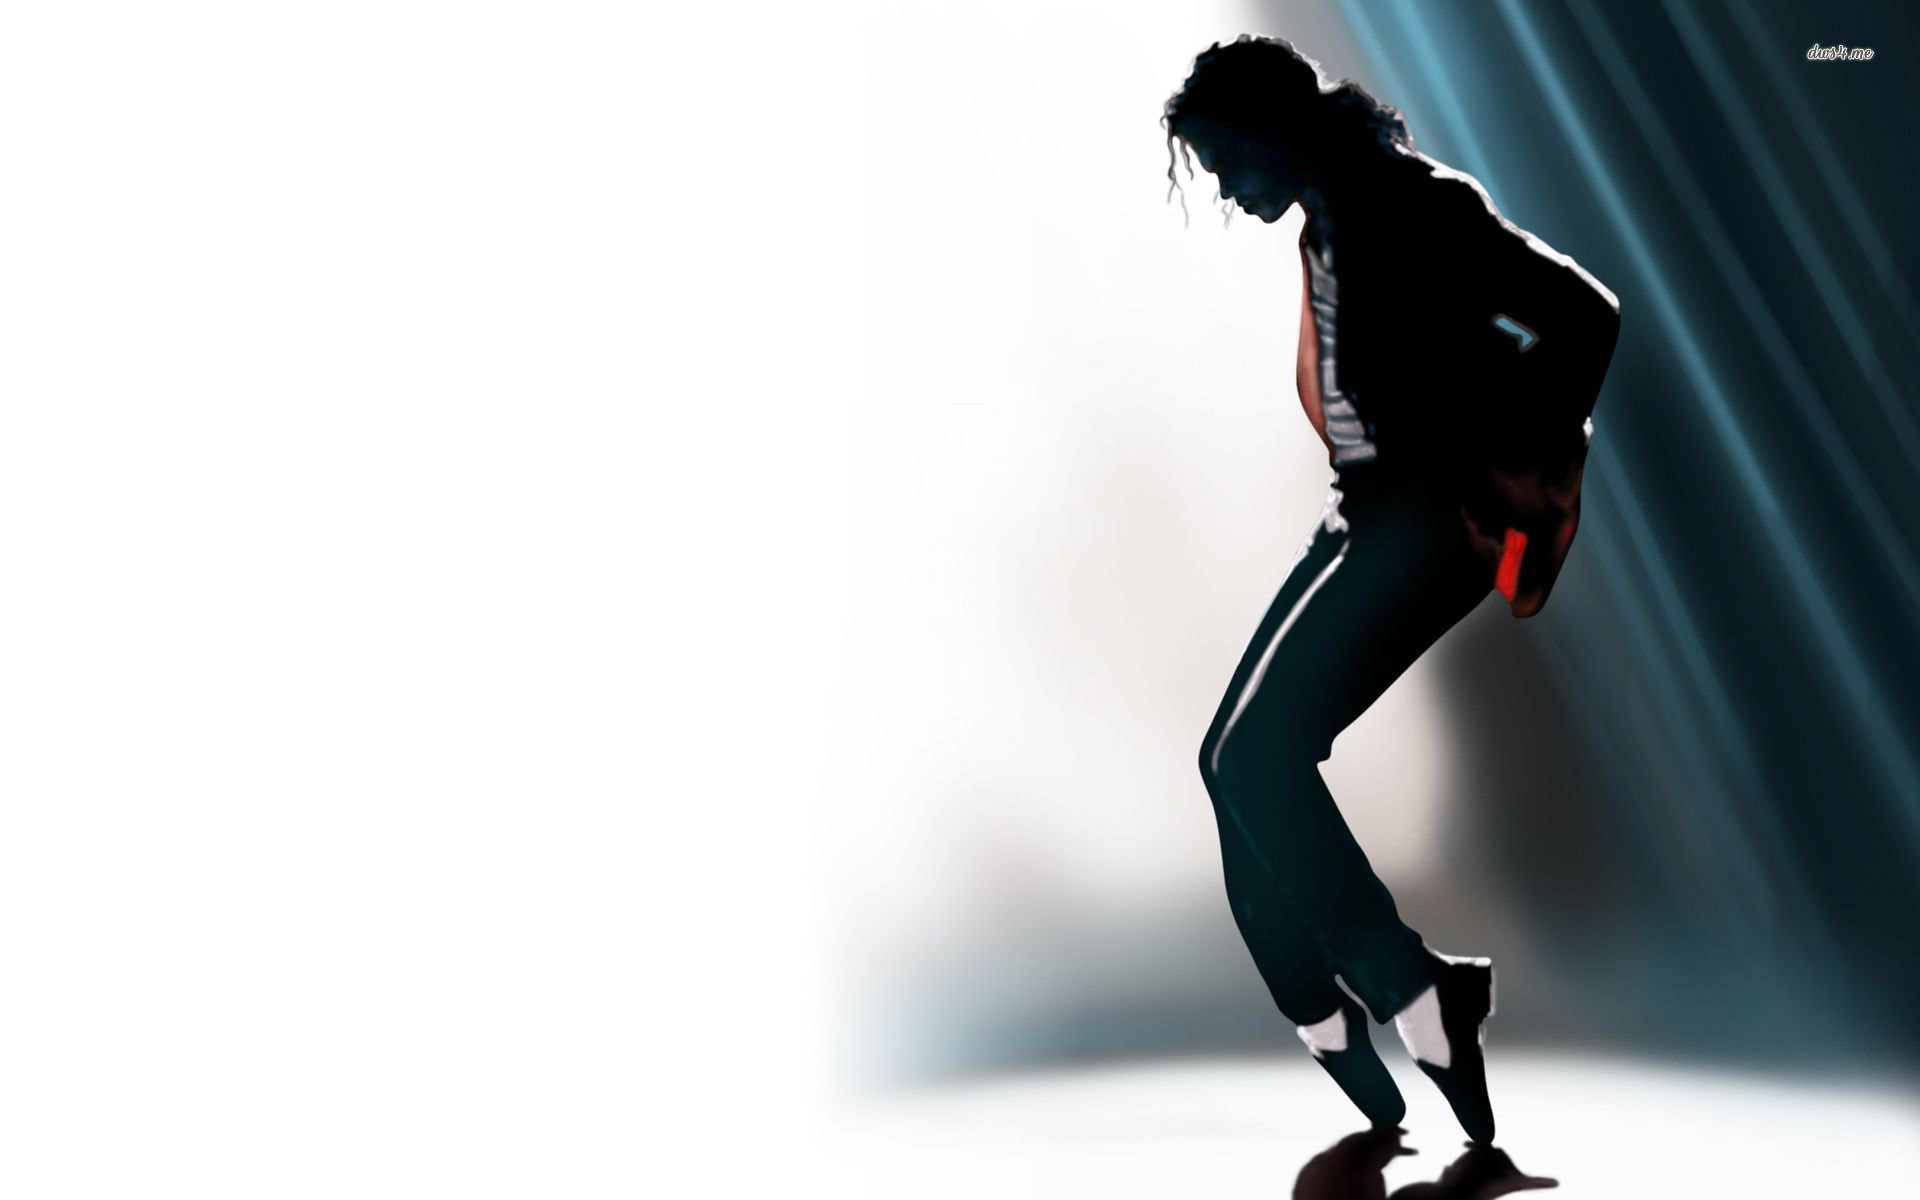 Michael Jackson Wallpapers HD toe stop